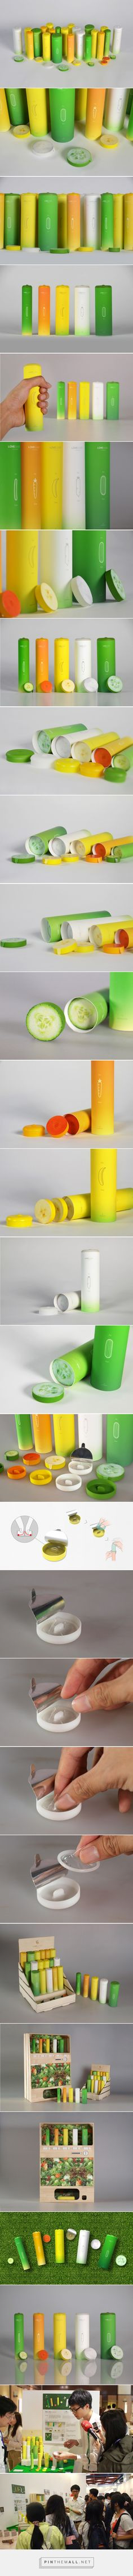 Determine your size just by holding the packaging! Love Guide Condoms concept designed by Guan-Hao Pan - http://www.packagingoftheworld.com/2015/08/love-guide-condoms-student-project.html